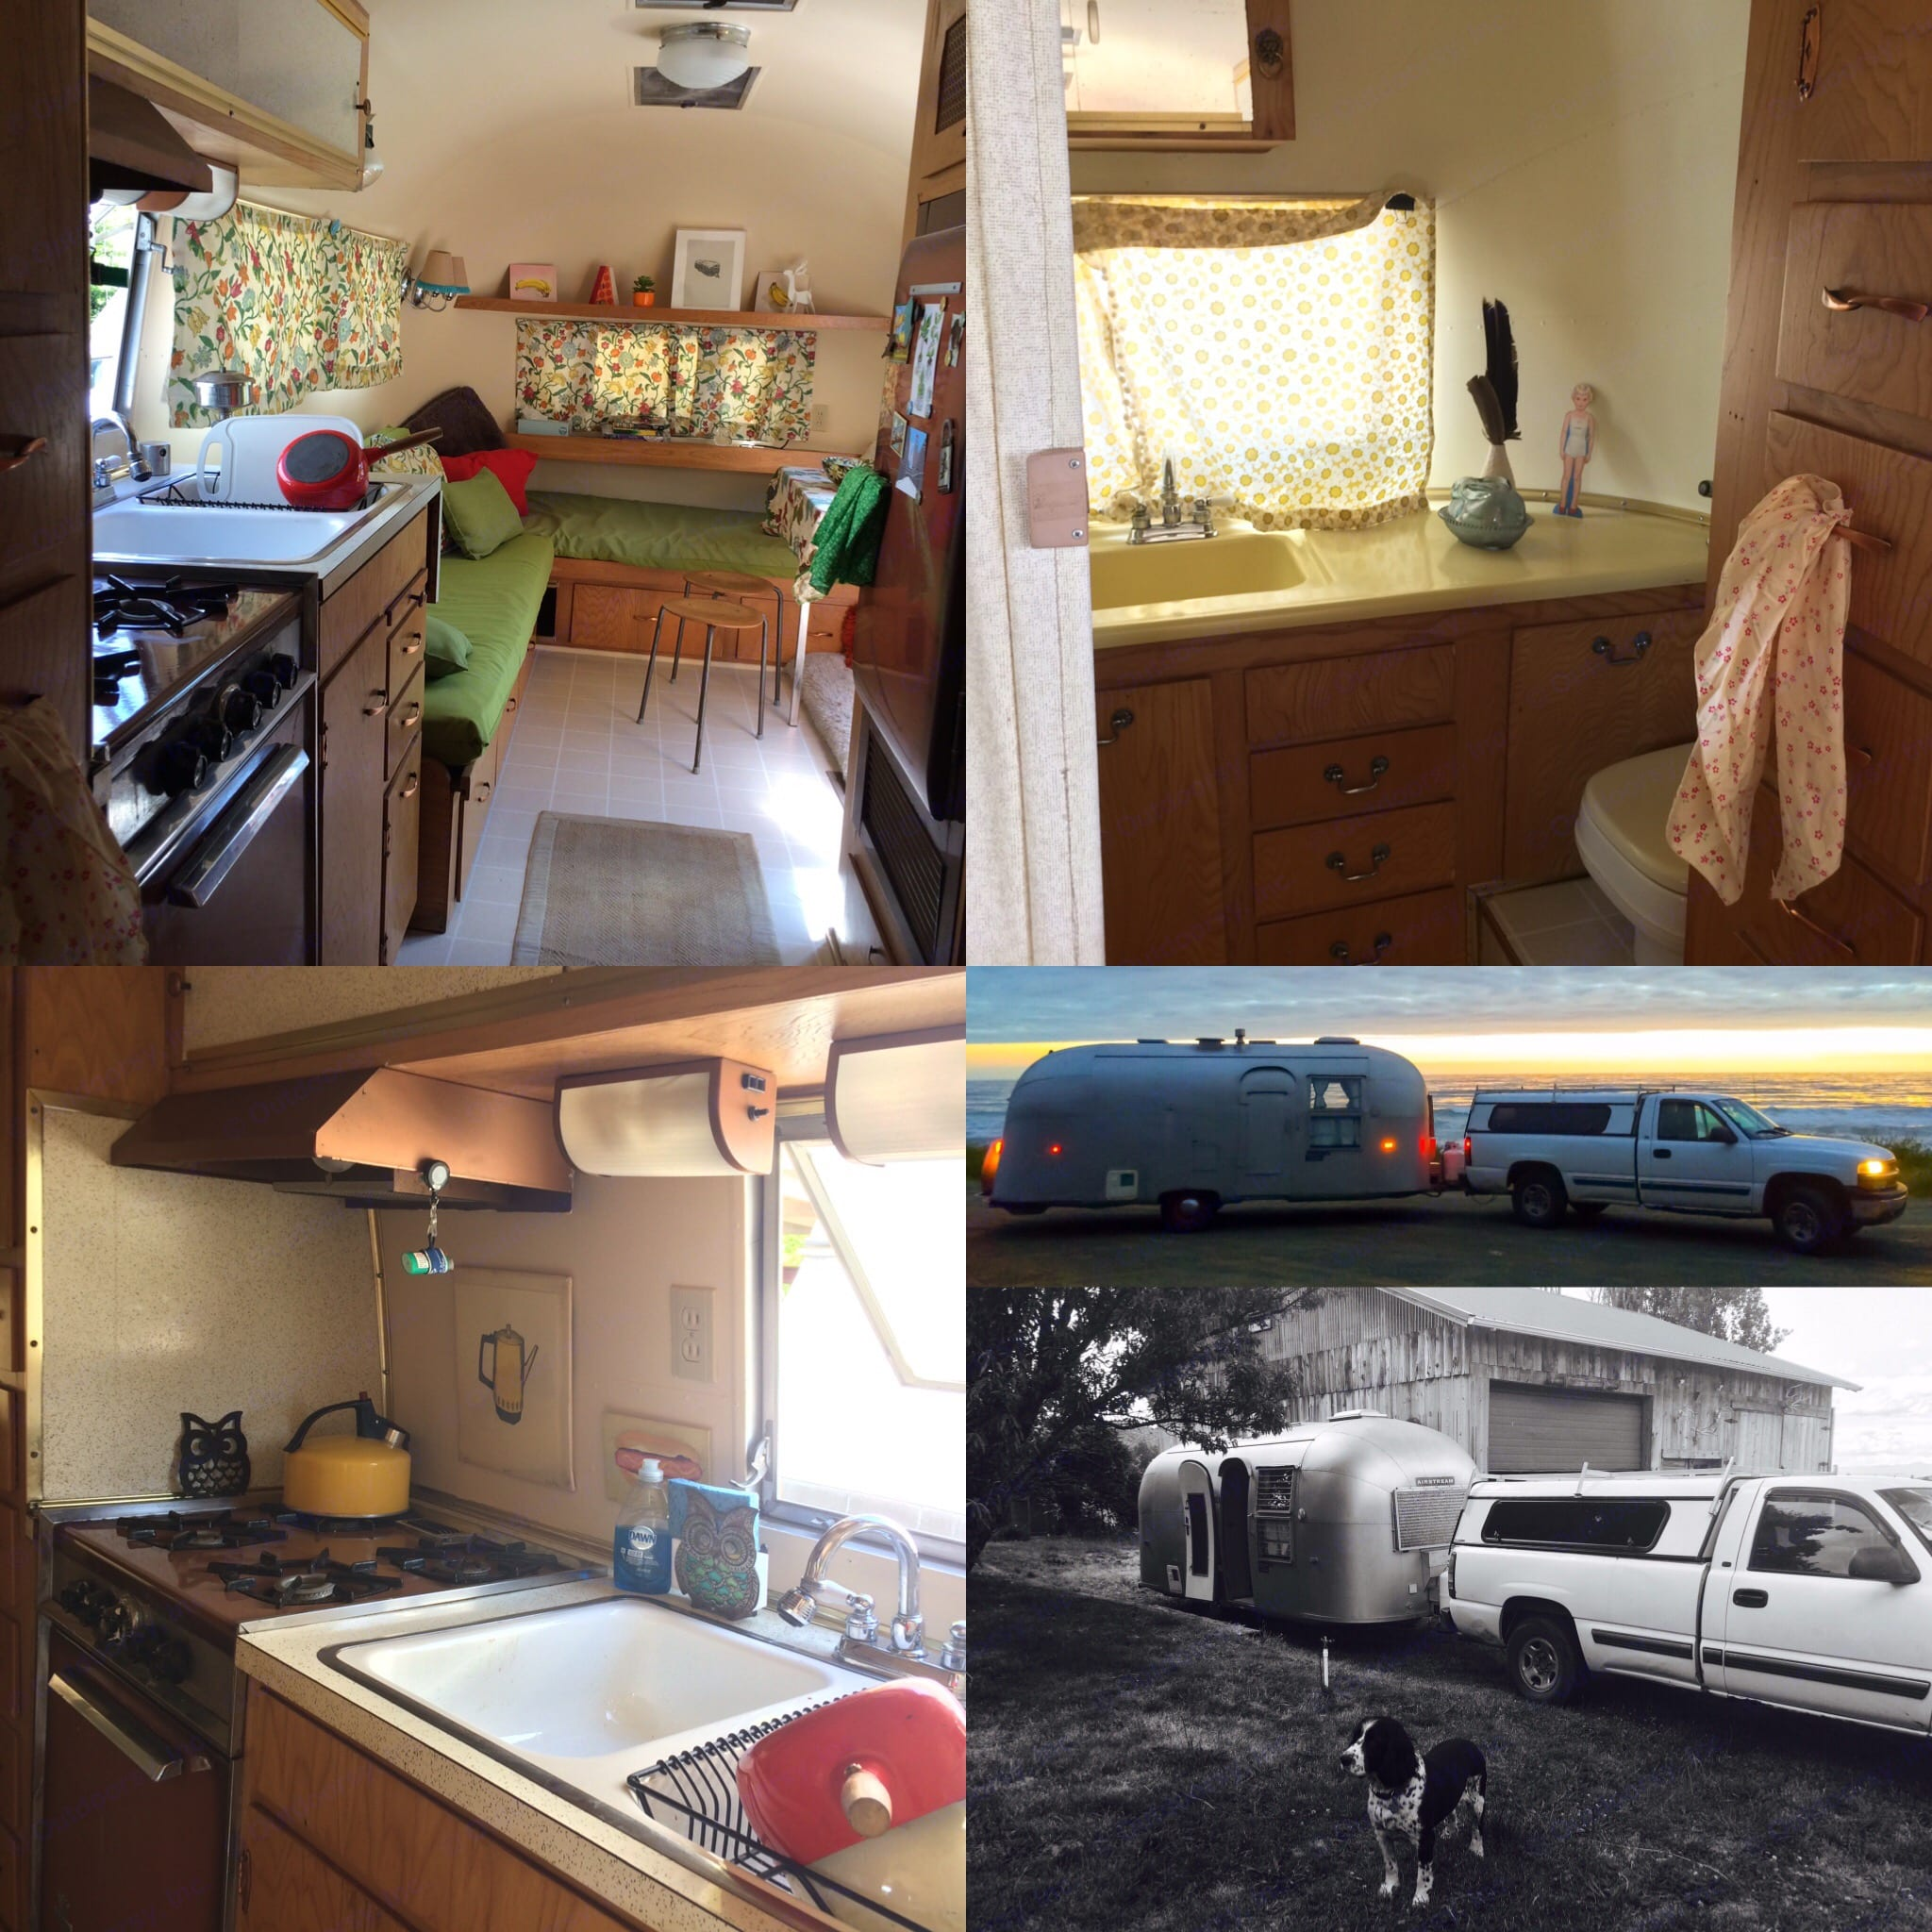 Detail shots of the airstream including kitchen and LR, bathroom sink and toilet, kitchen, and exterior.. Airstream Flying Cloud 1961